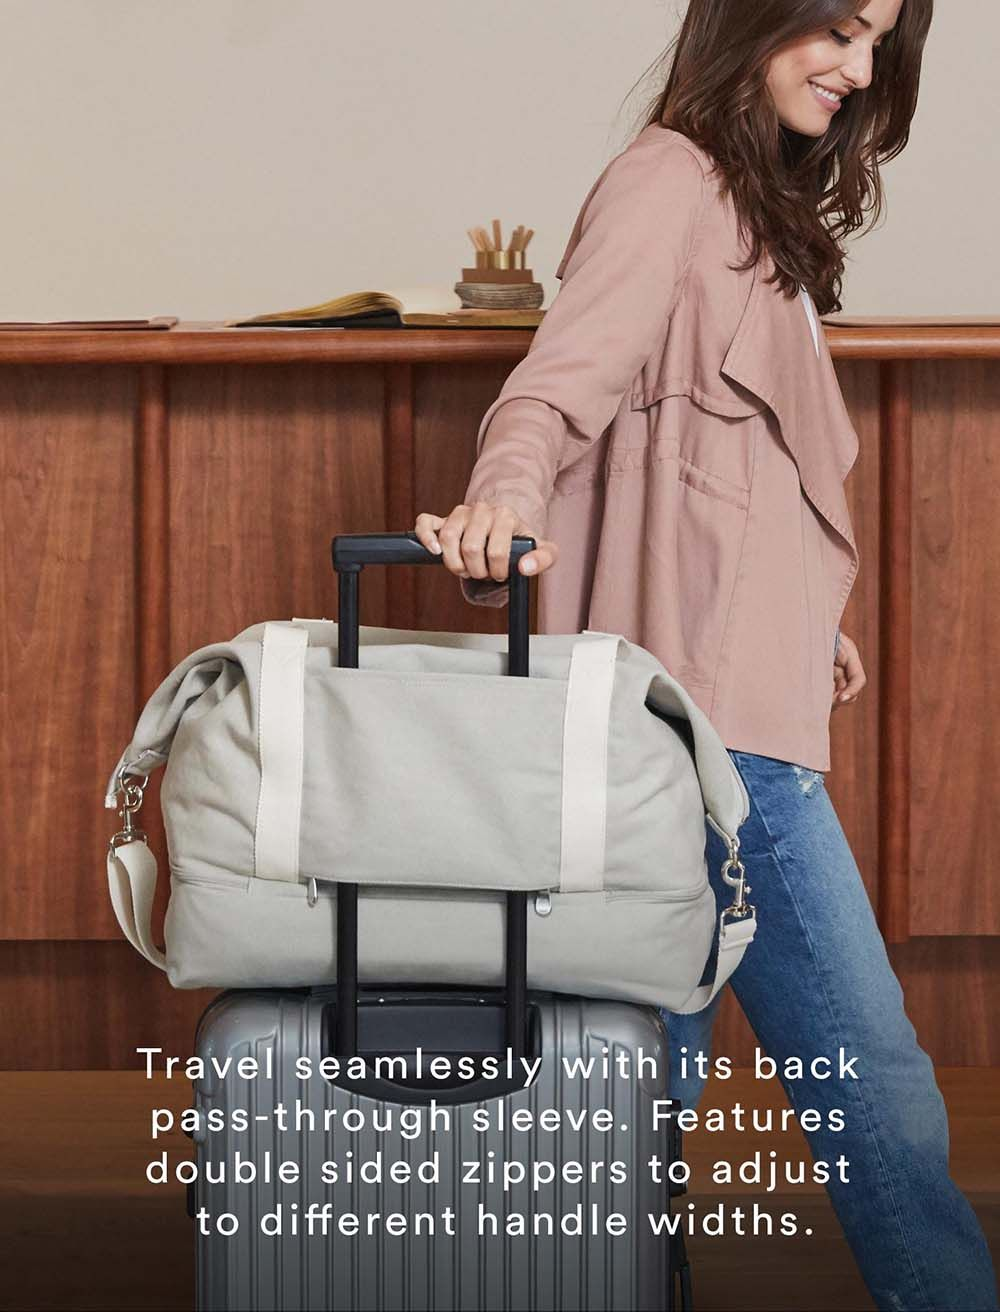 The deluxe edition of our Catalina weekender bag. An ultra lightweight and super spacious travel bag, now with additional features for seamless travel.